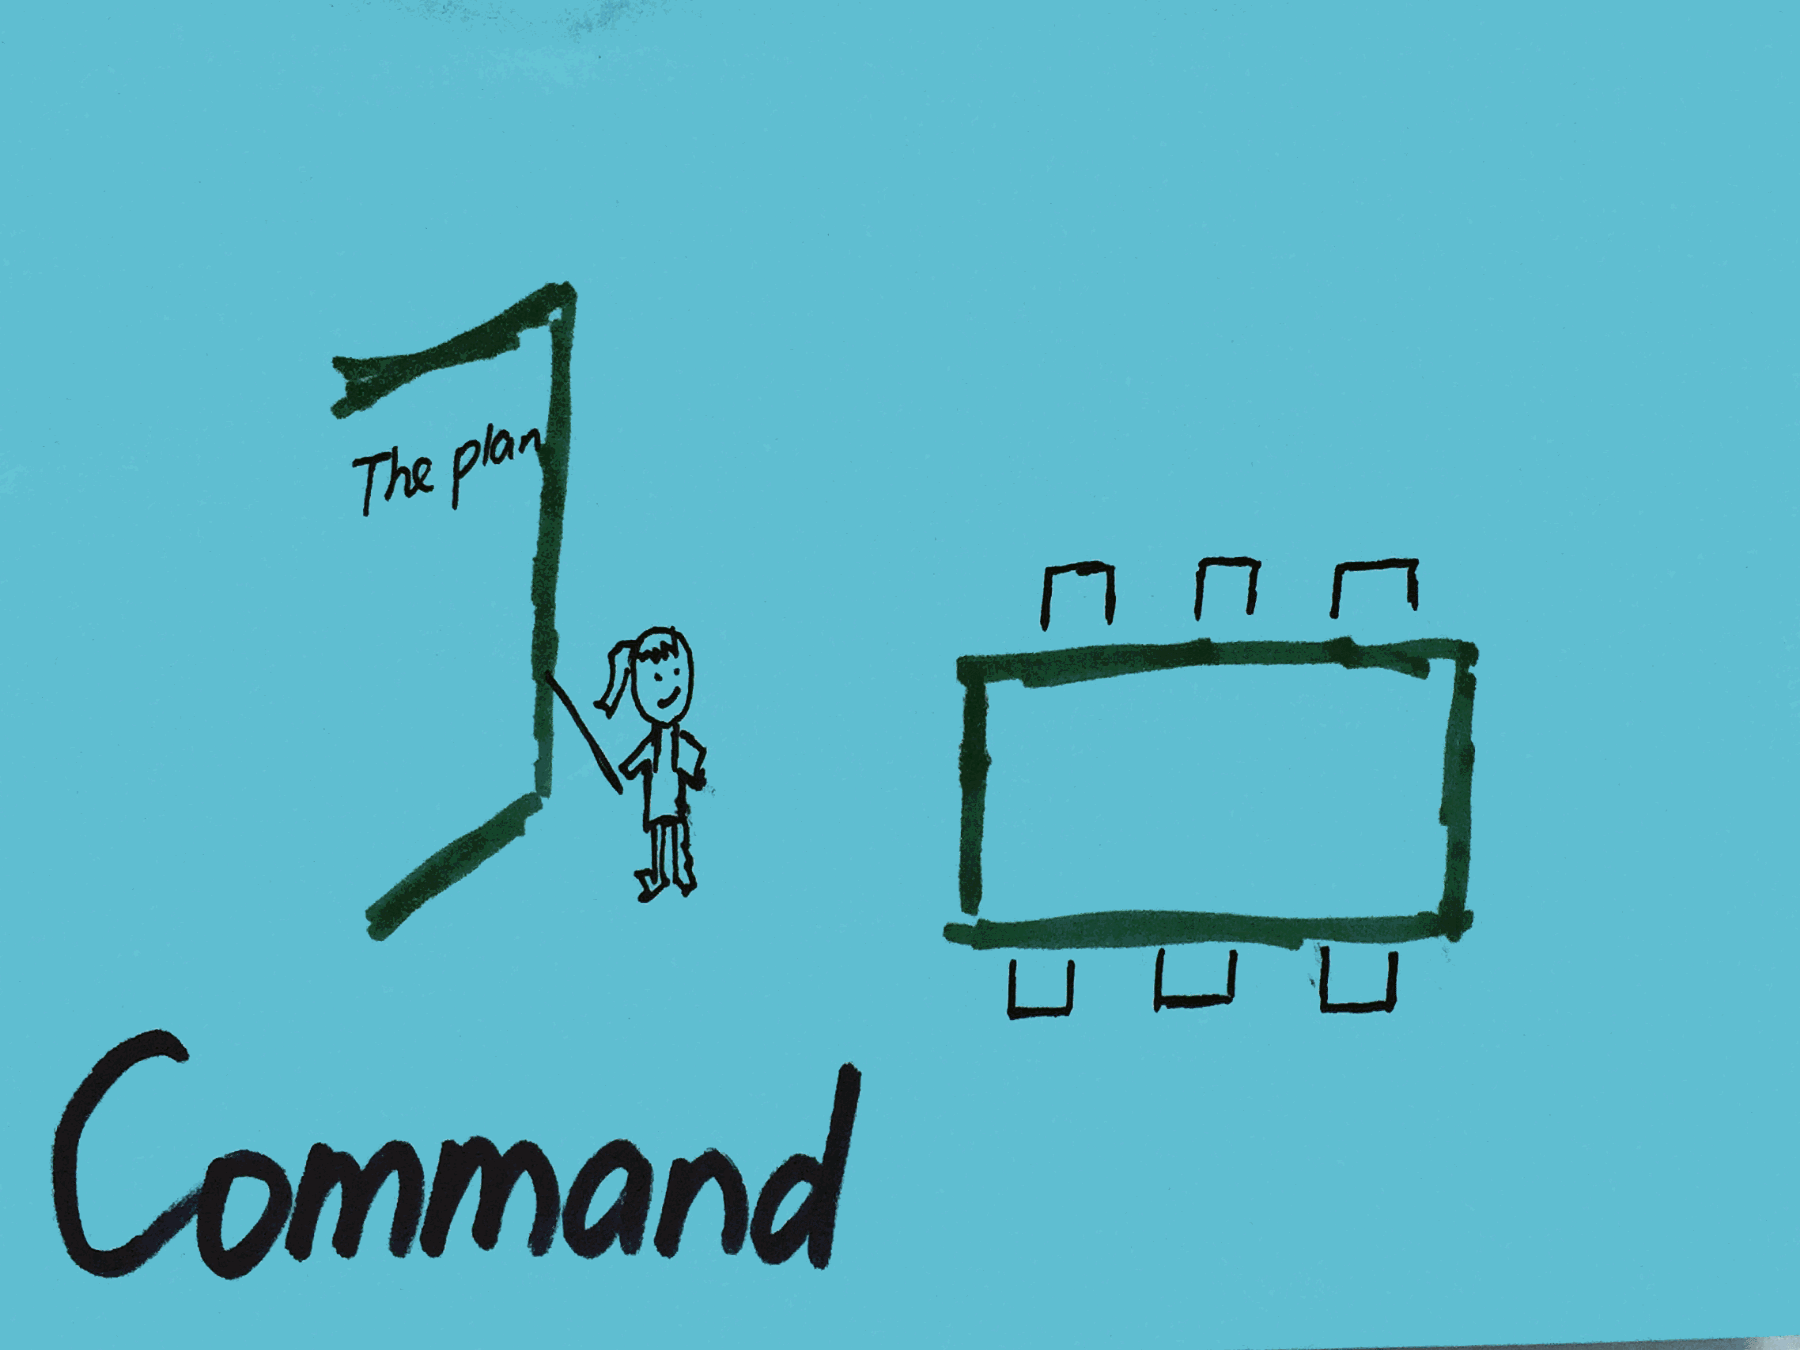 Command Strengthsfinder Sharing the Plan